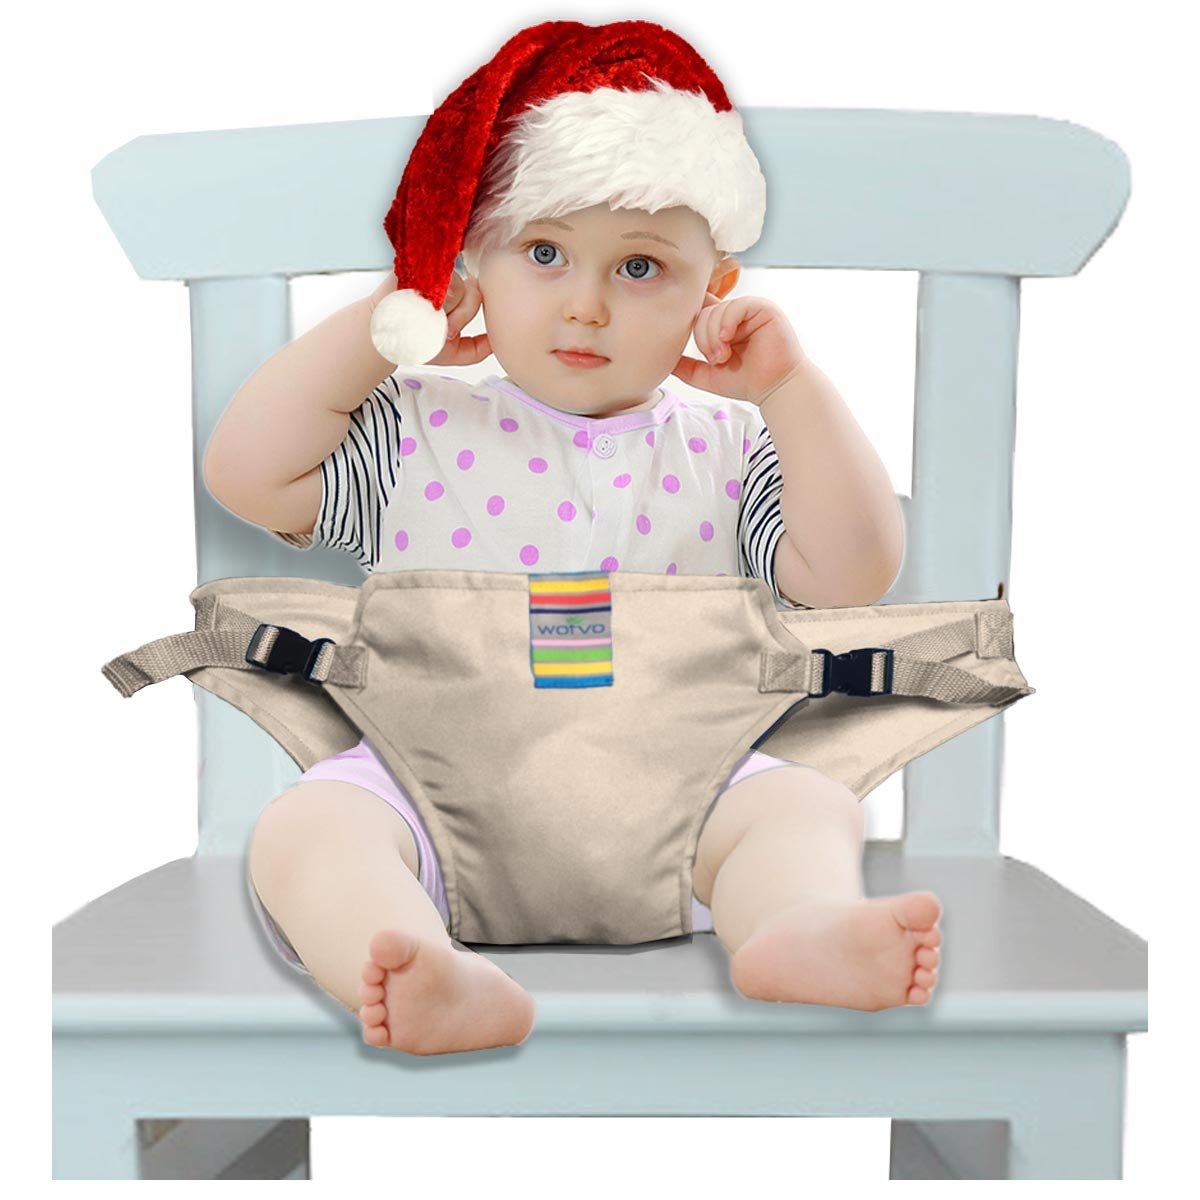 The Washable Portable Travel High Chair Booster Baby Seat with straps Toddler Safety Harness Baby feeding the strap (6 Color) (Khaki) Hangzhou Wo yu Trading Co. Ltd zyd-01A